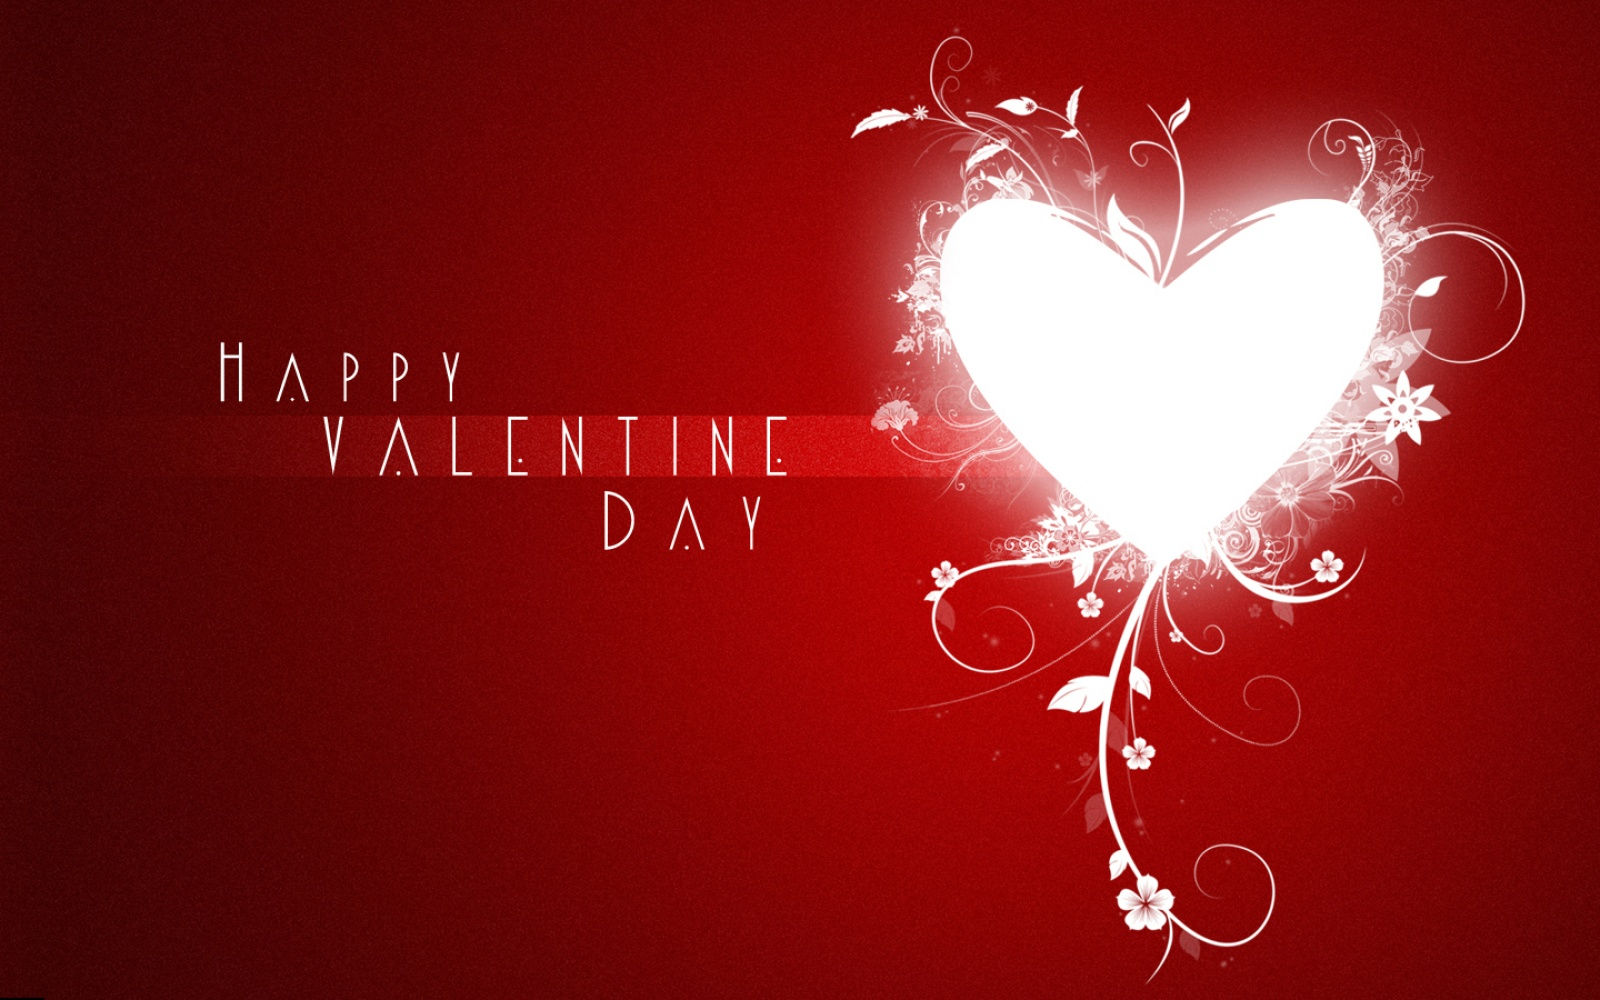 valentines day wallpaper 2012 I   Celebes 1600x1000